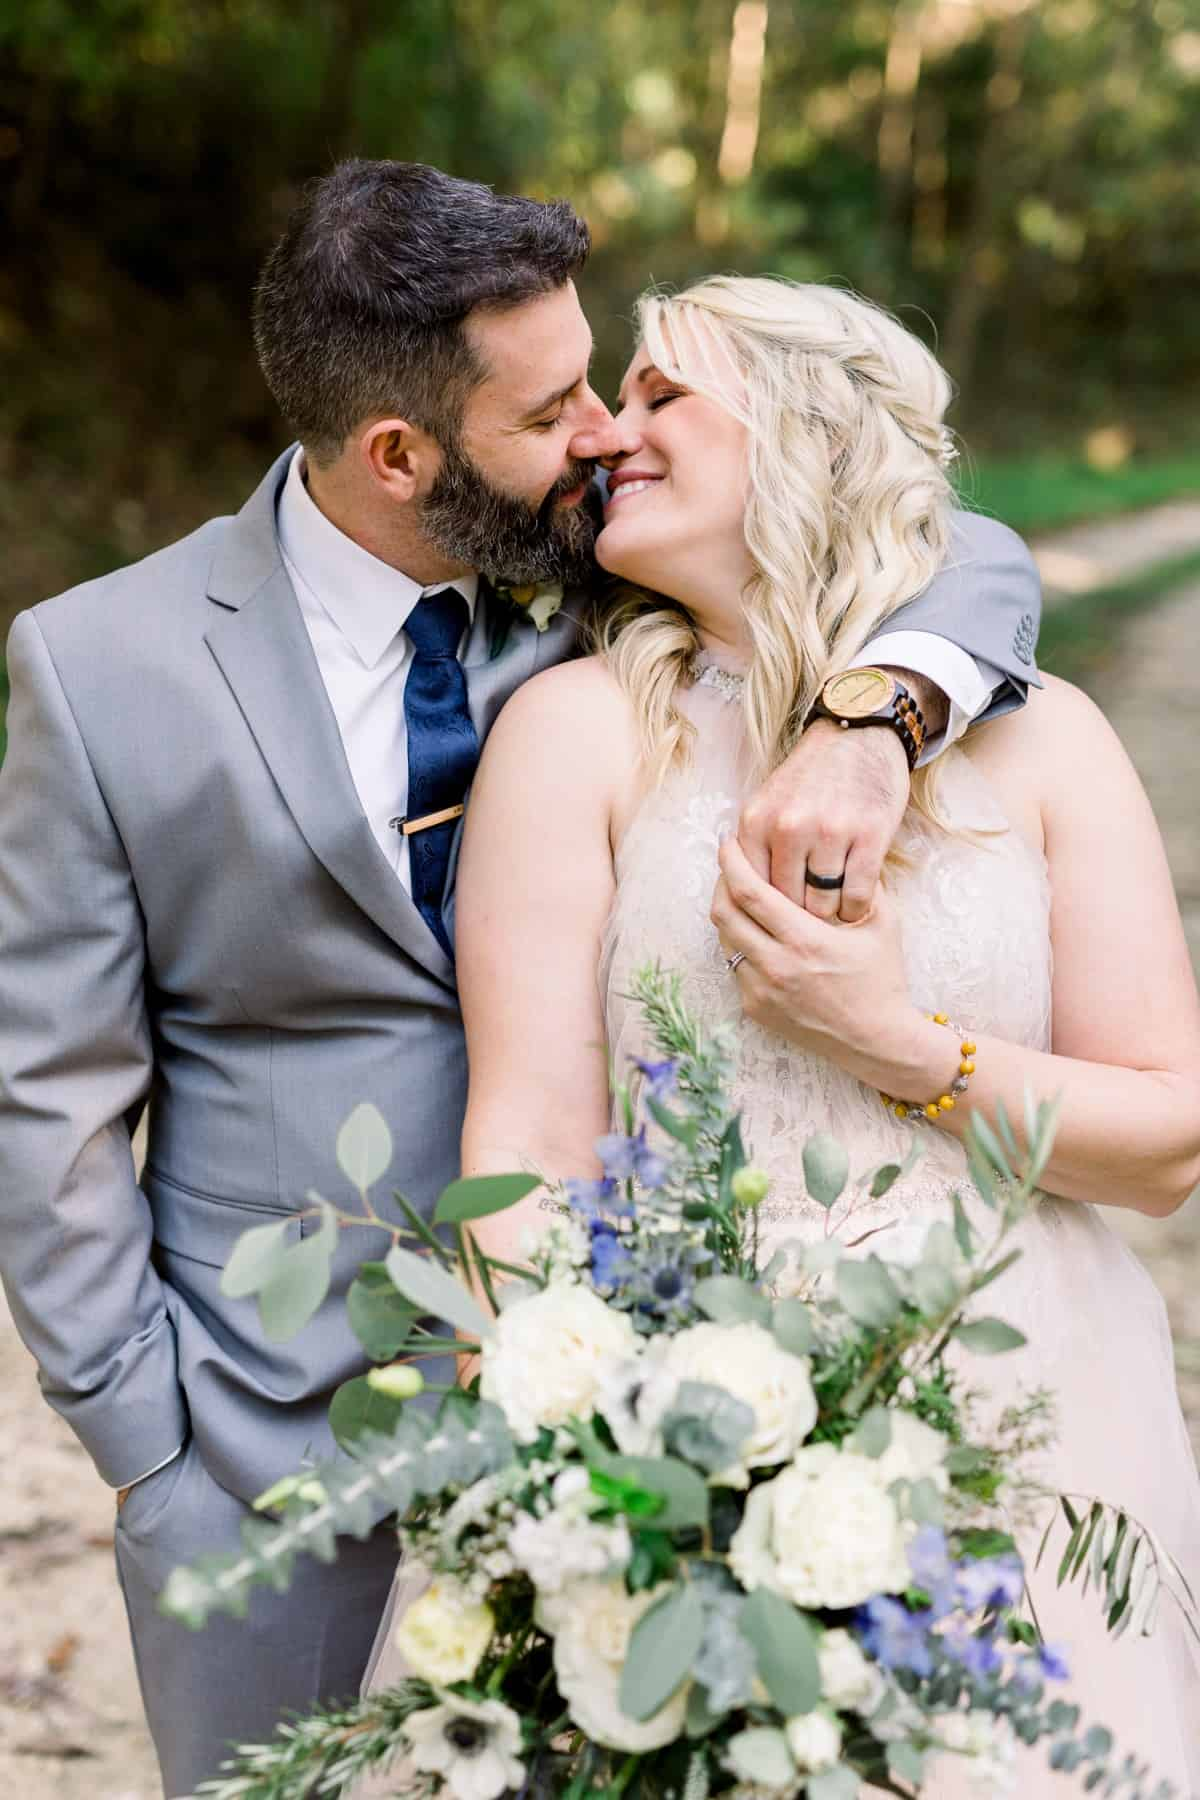 Midwest Wedding Photographer, Bride and Groom Portraits, Illinois Countryside